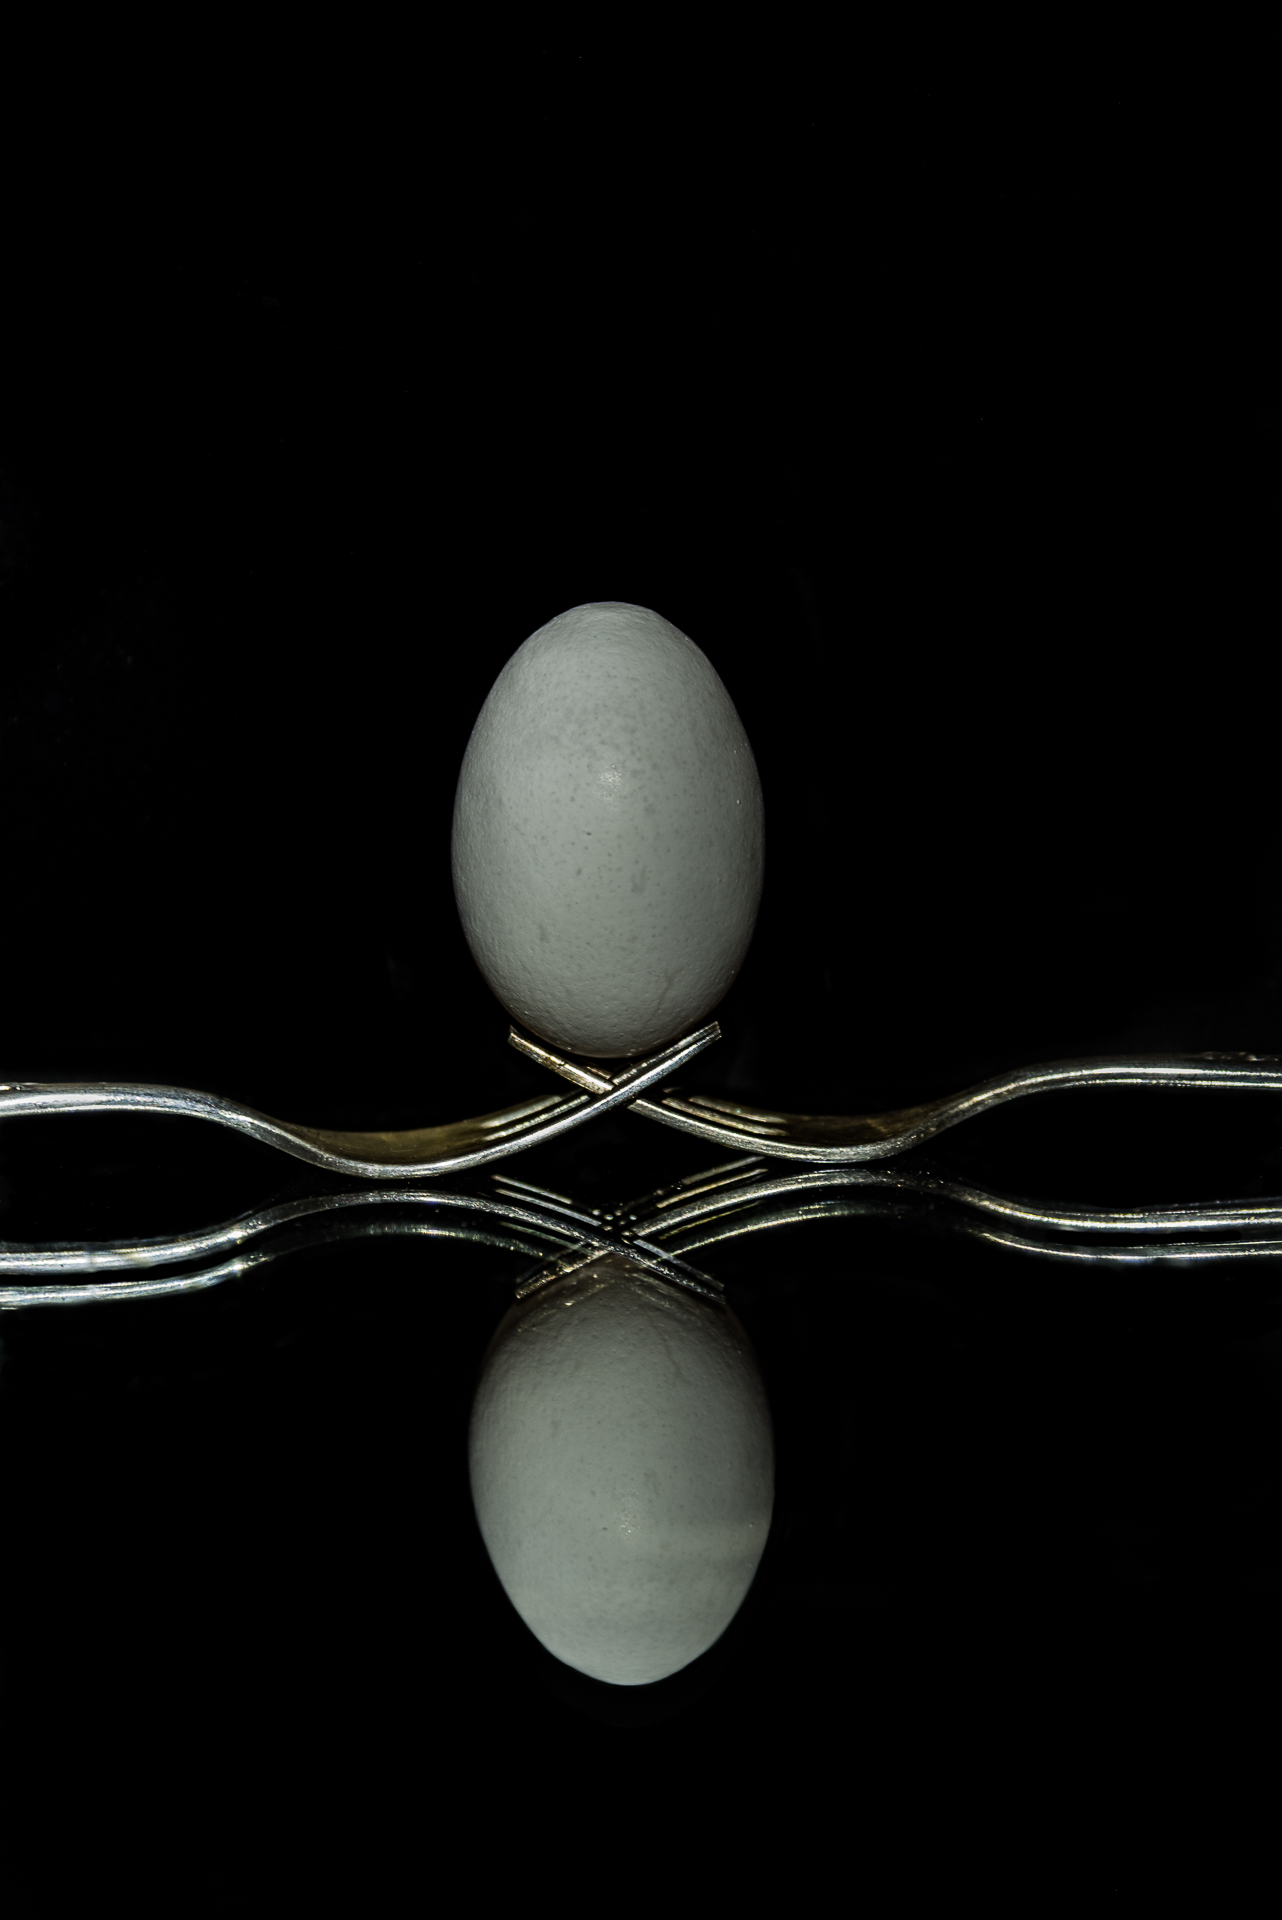 Egg Balanced on Forks - Digital (Artificial Light) - Name Withheld Per Request